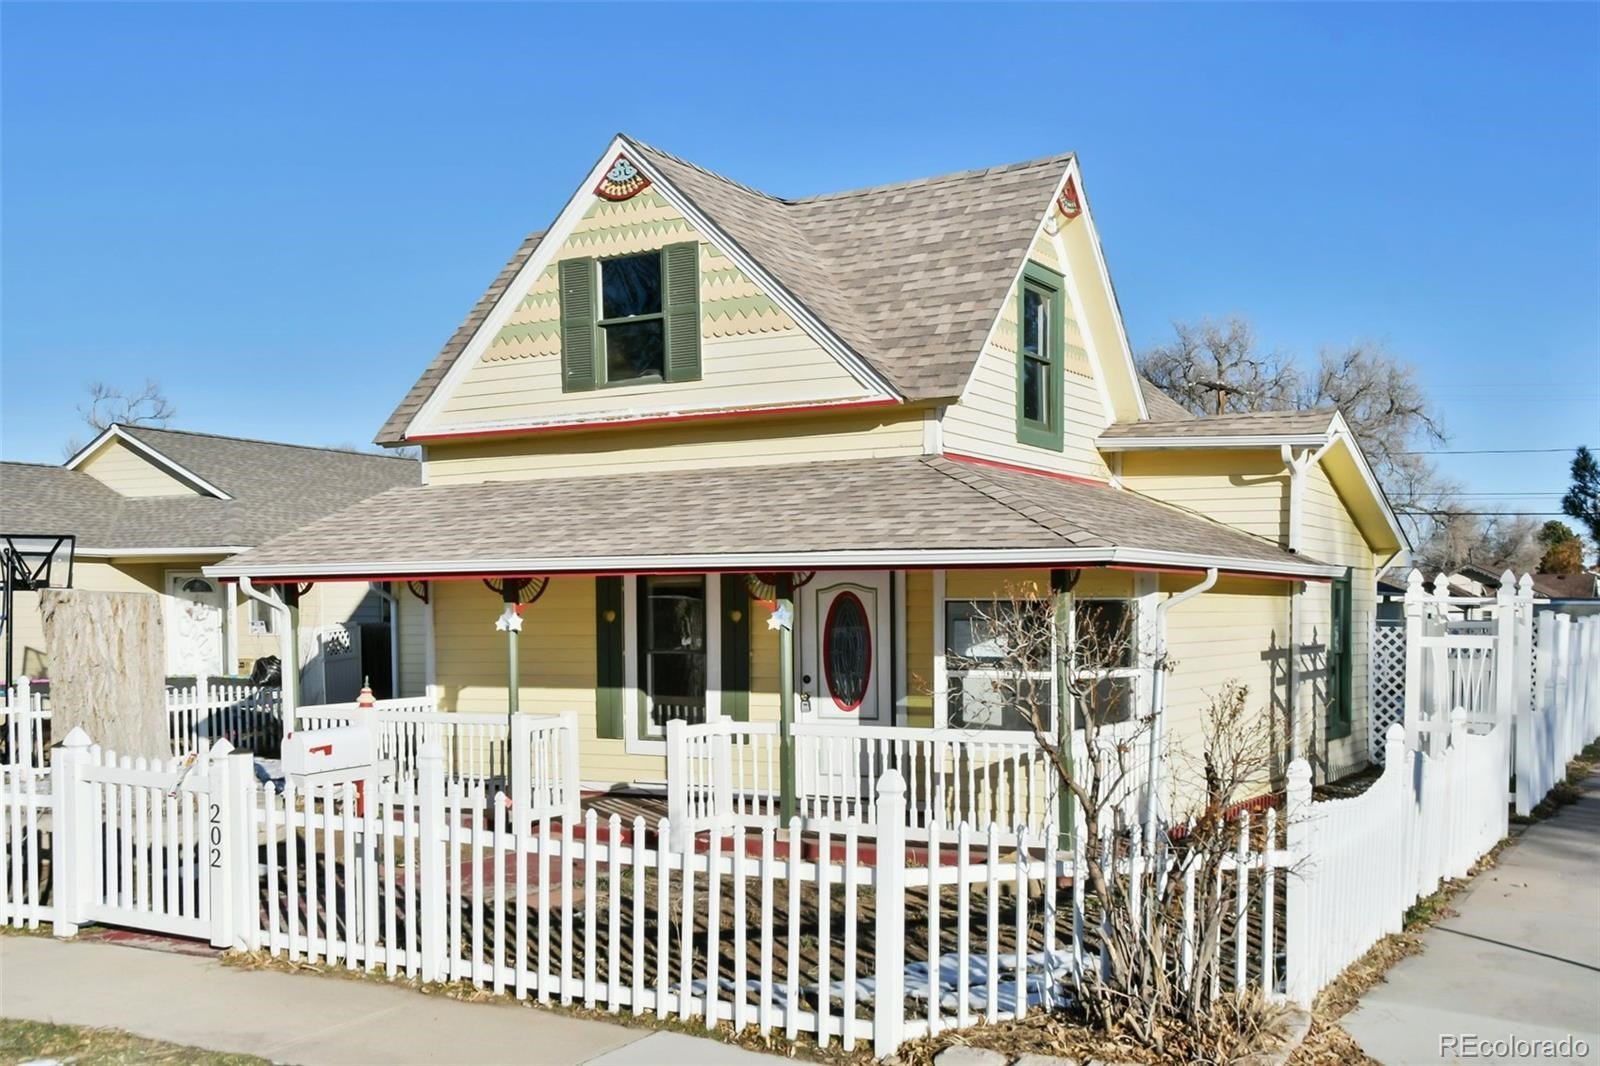 MLS# 2703871 - 1 - 202 N 5th Avenue, Brighton, CO 80601